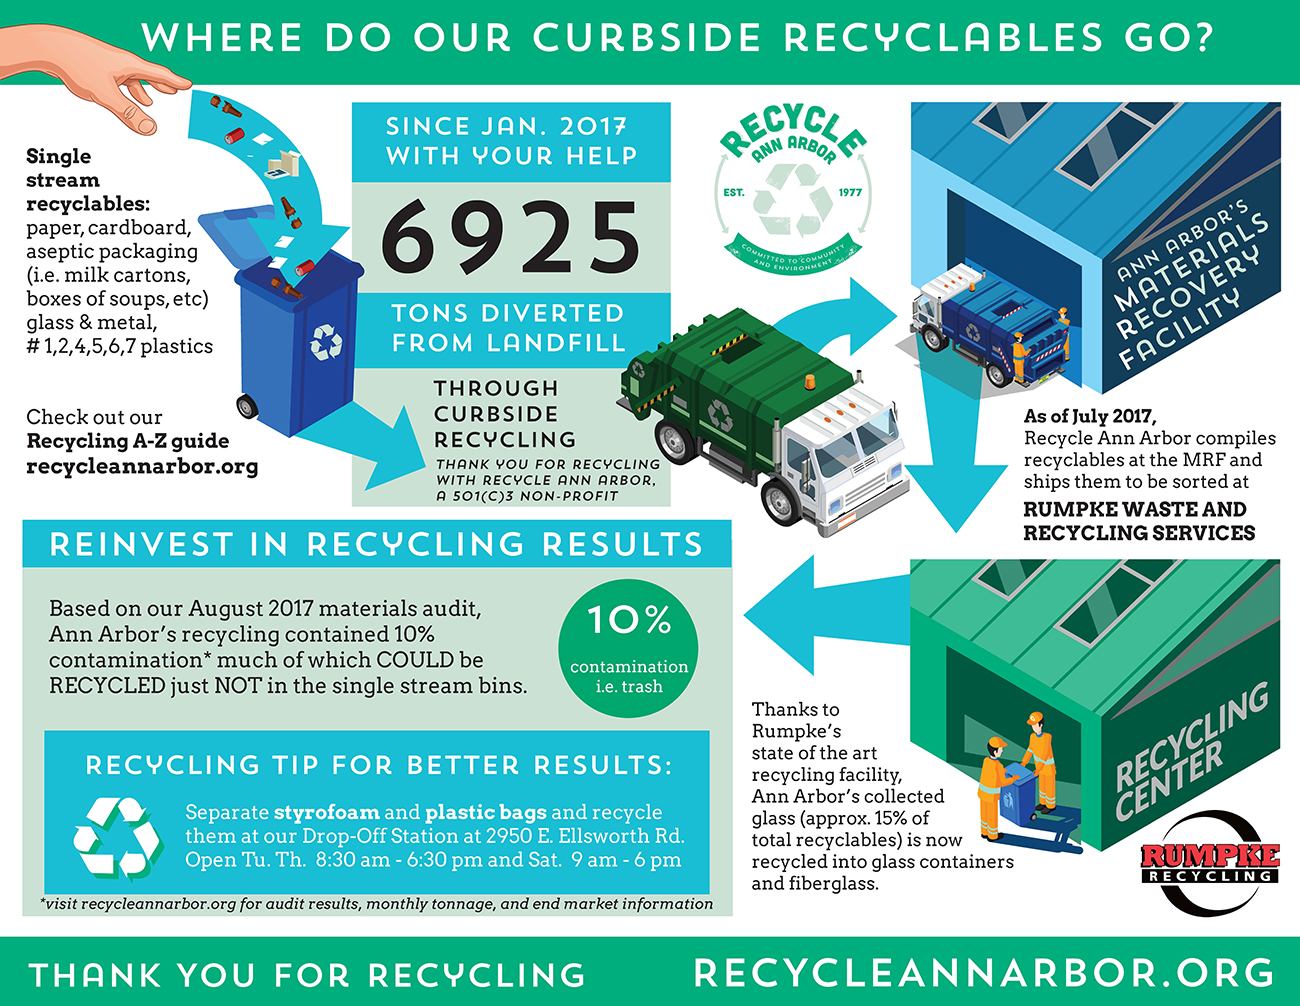 Where do our recyclables go?